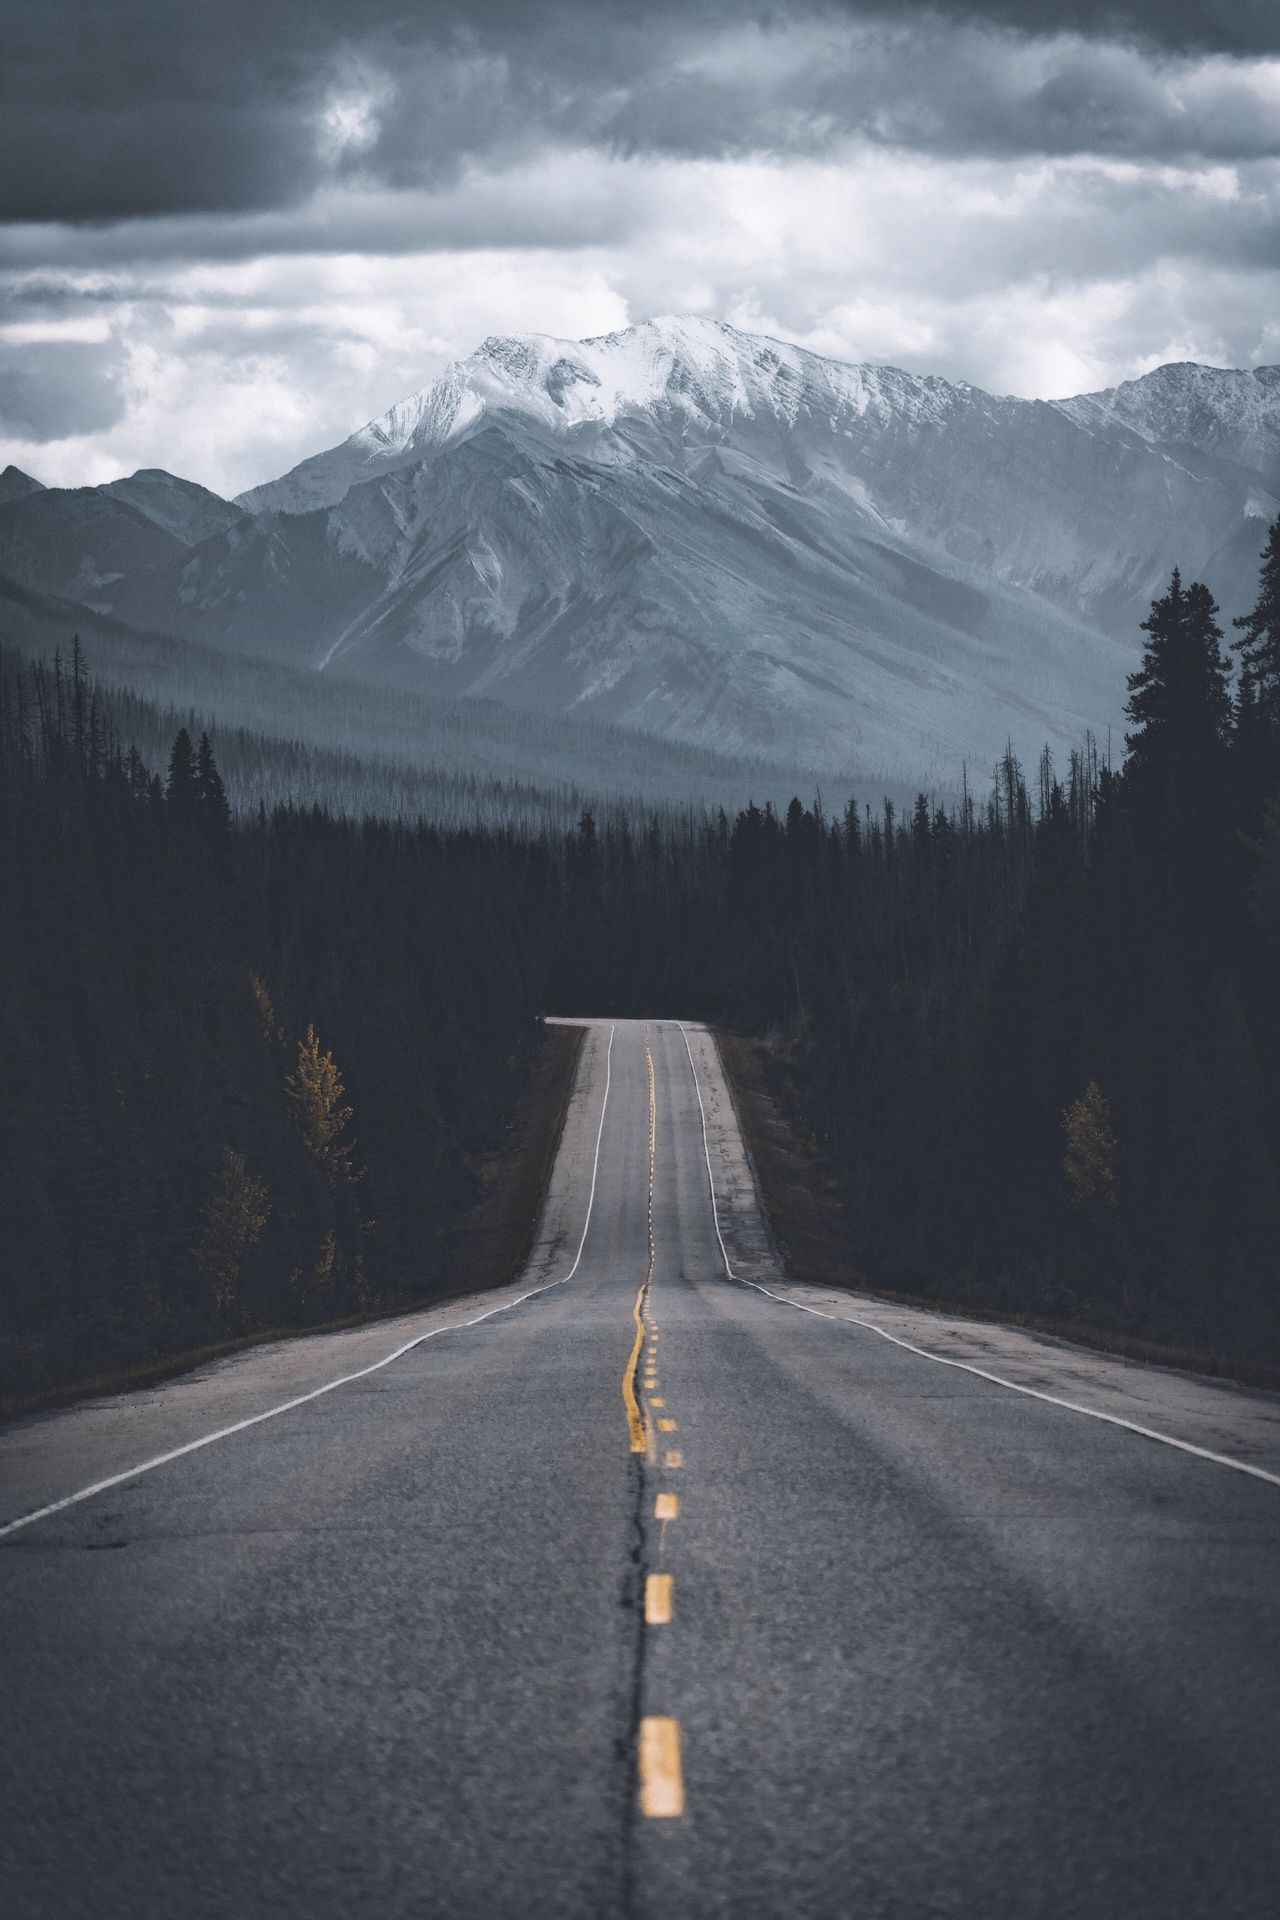 Highway to hell or heaven. Canada Mountain Snow Mountain Range Cold Temperature Winter The Way Forward Road Landscape Scenics Transportation Tranquil Scene Beauty In Nature Nature Non-urban Scene Outdoors No People Day